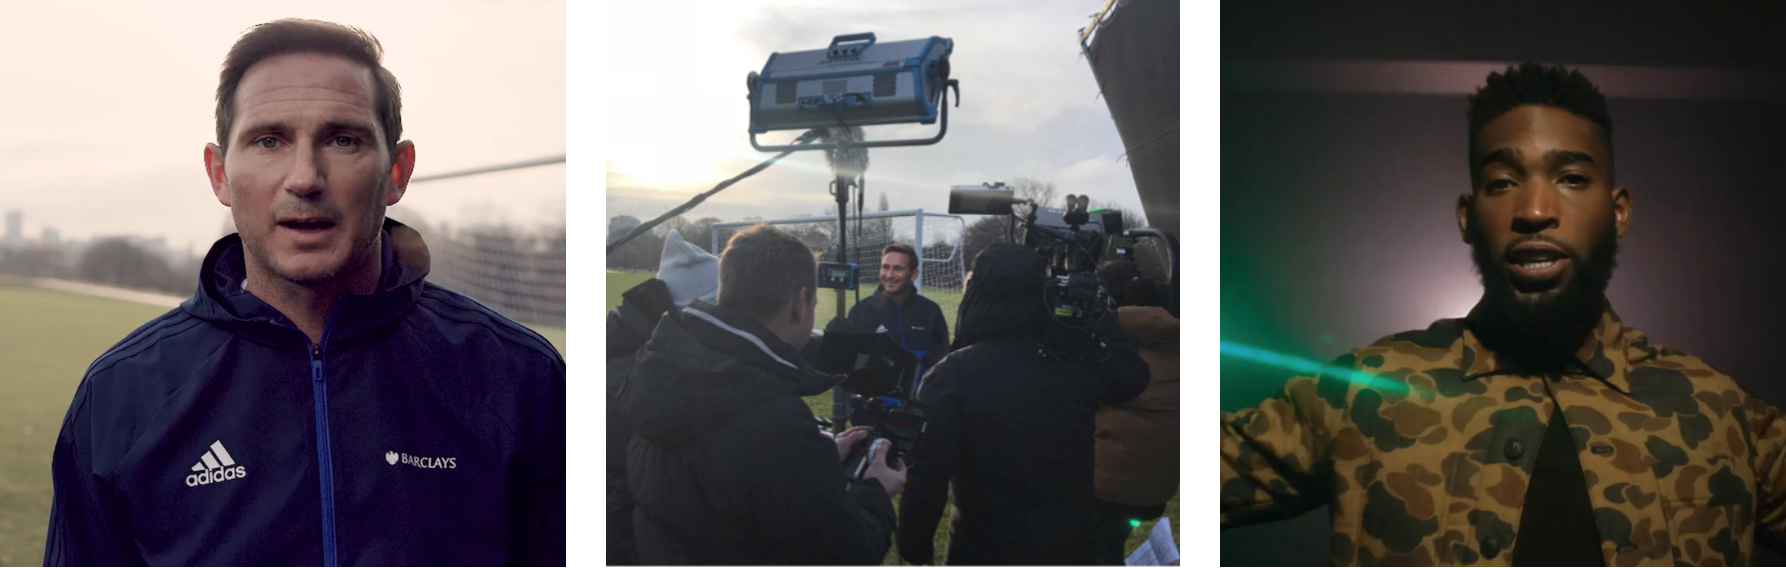 BARCLAYS 'GAME CHANGING'   /  18 month football strategy producing content and events with their new ambassador Frank Lampard as well as overseeing all social and Manager of the Month competitions. The Development of a two year lifeskills campaign with Barclays and Tinie Tempah with content and live events.